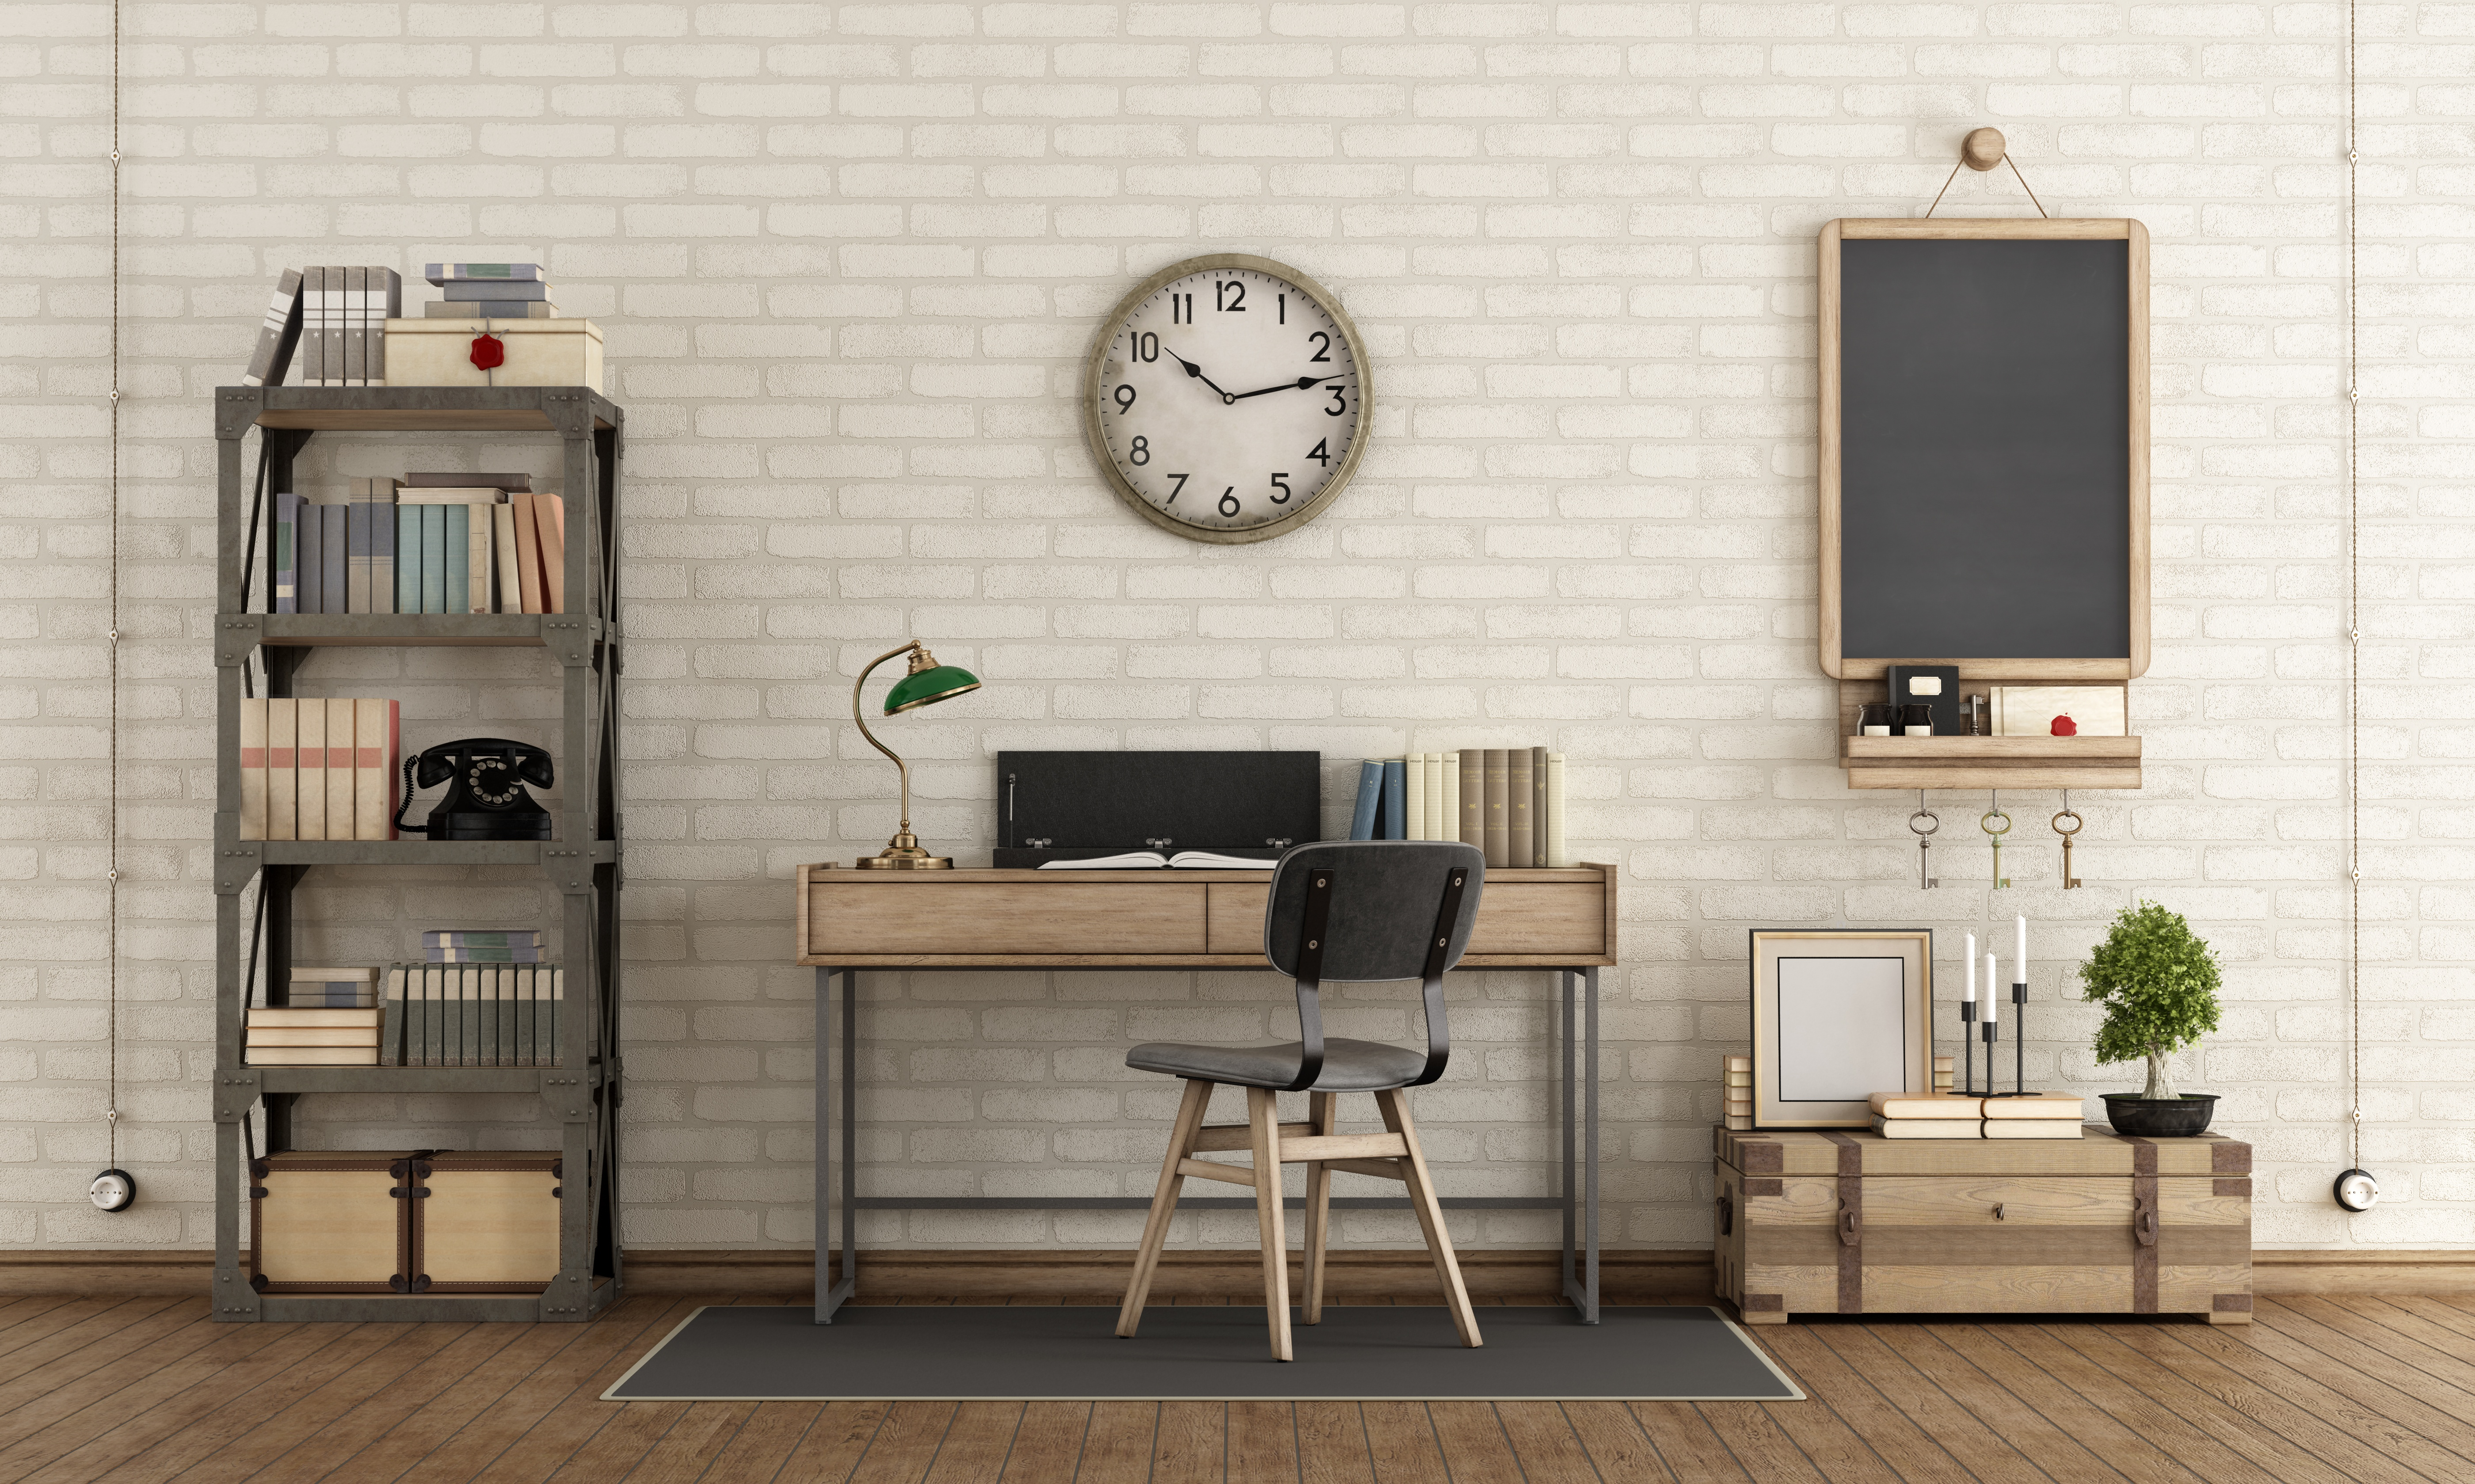 Work From Home Like Never Before With These Basement Home Office Tips